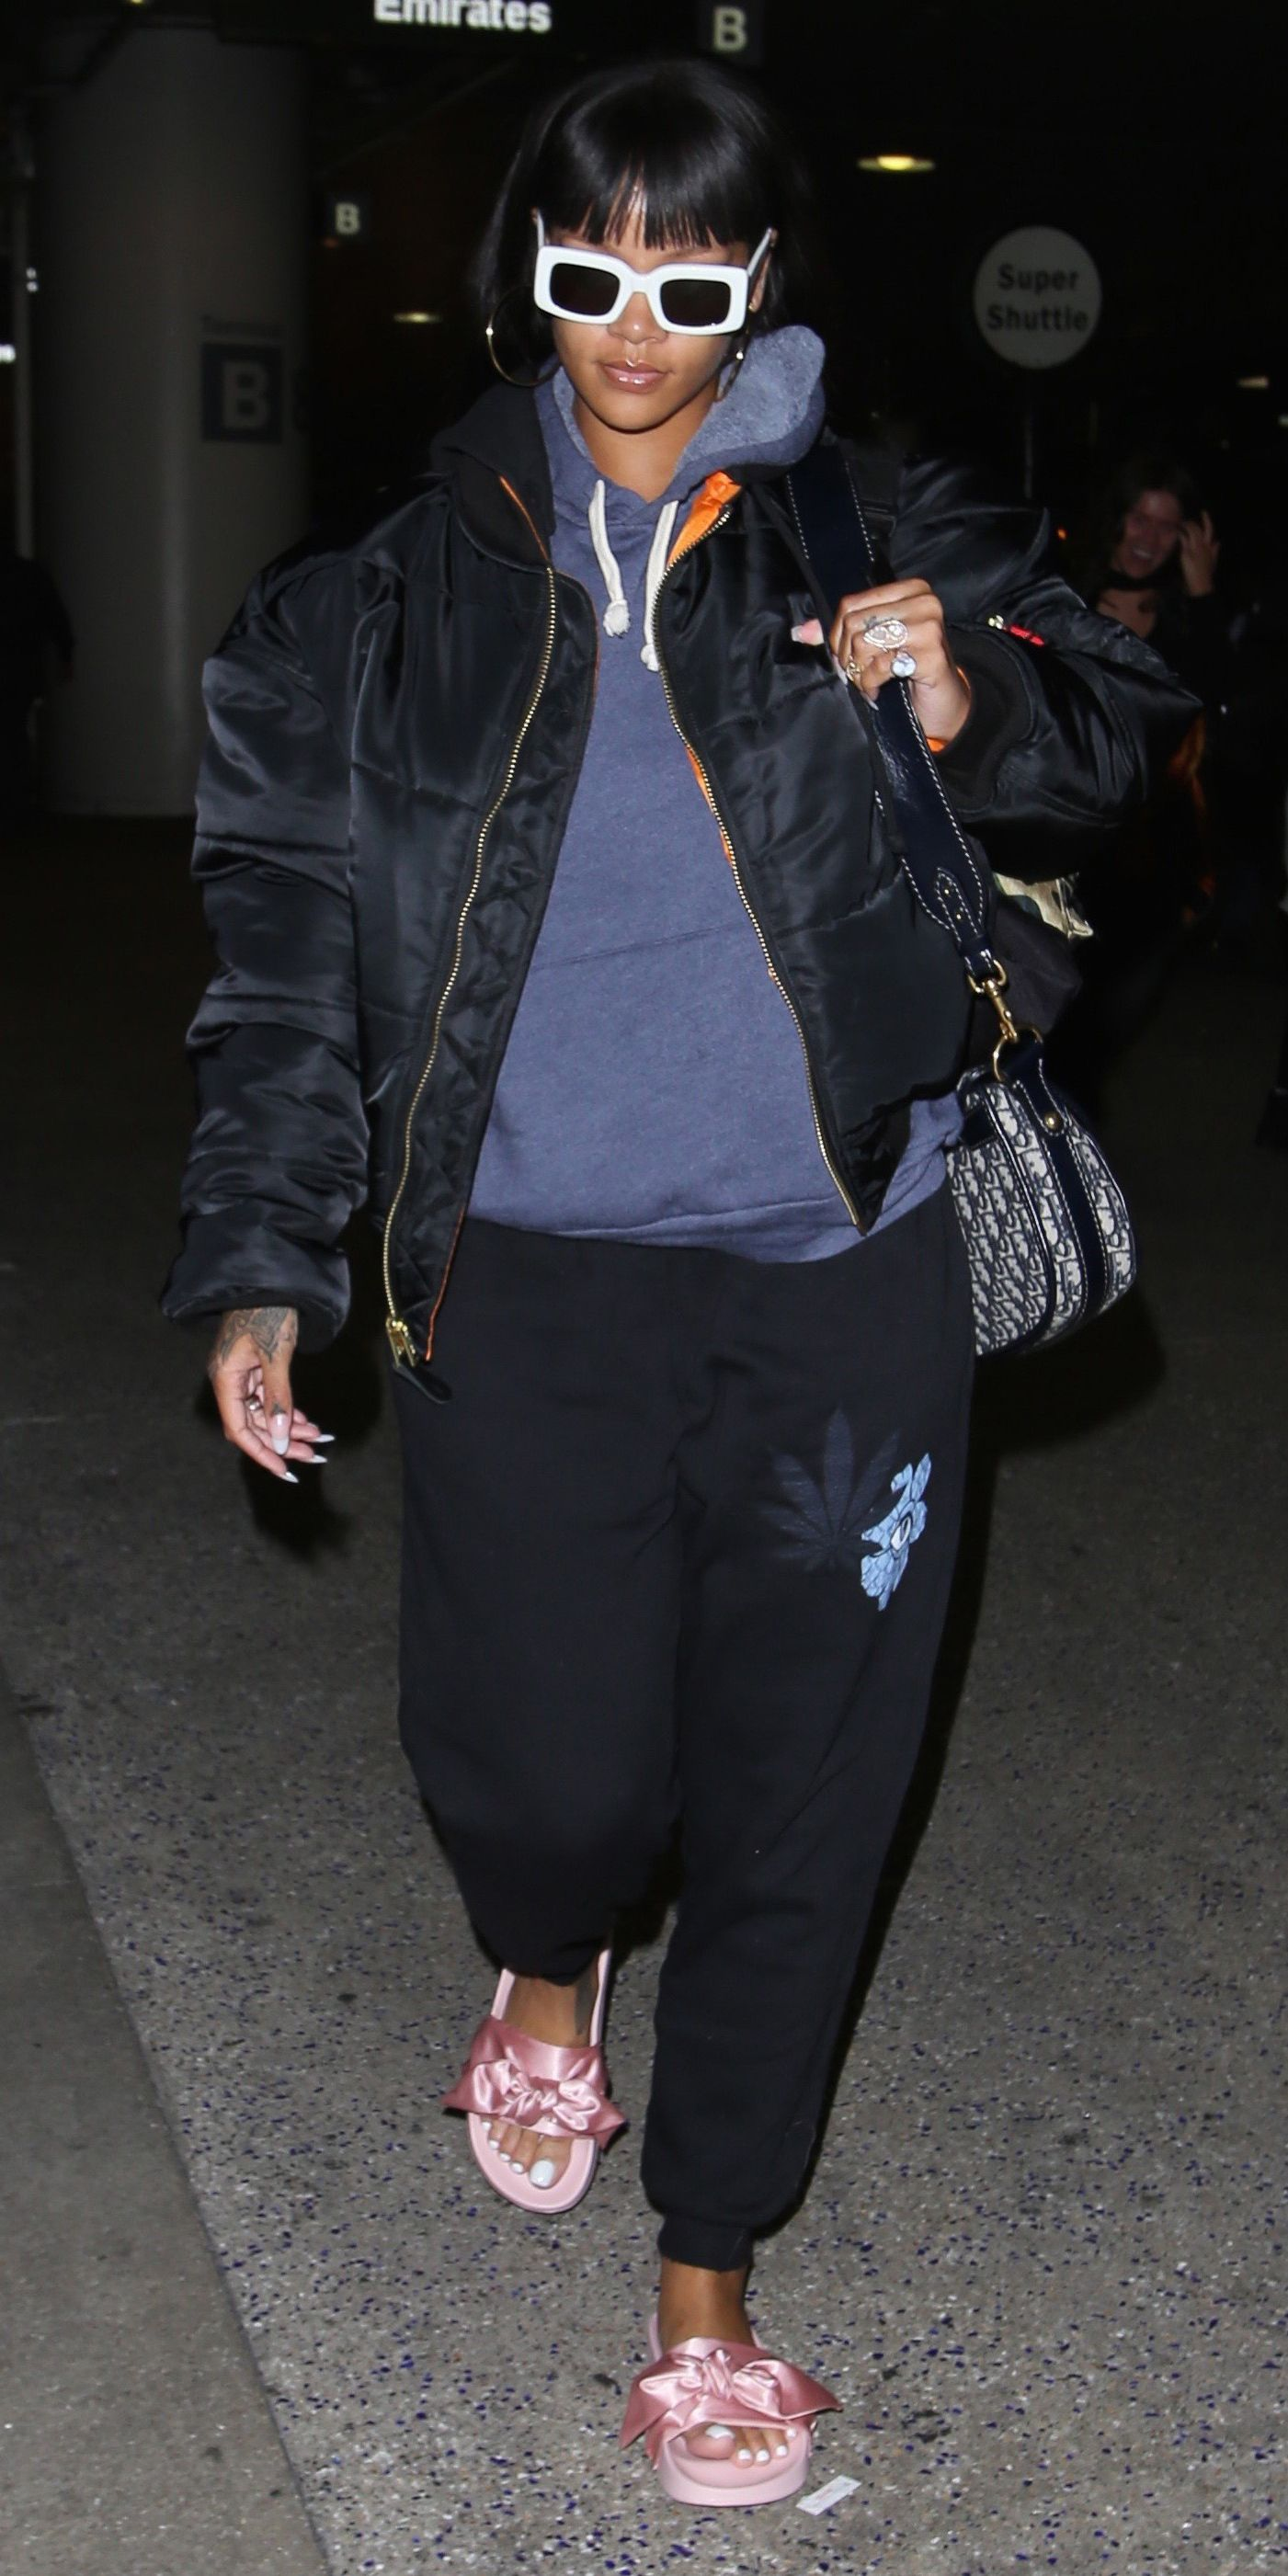 b32bfd5dfa Rihanna s Best Street Style Looks - April 19